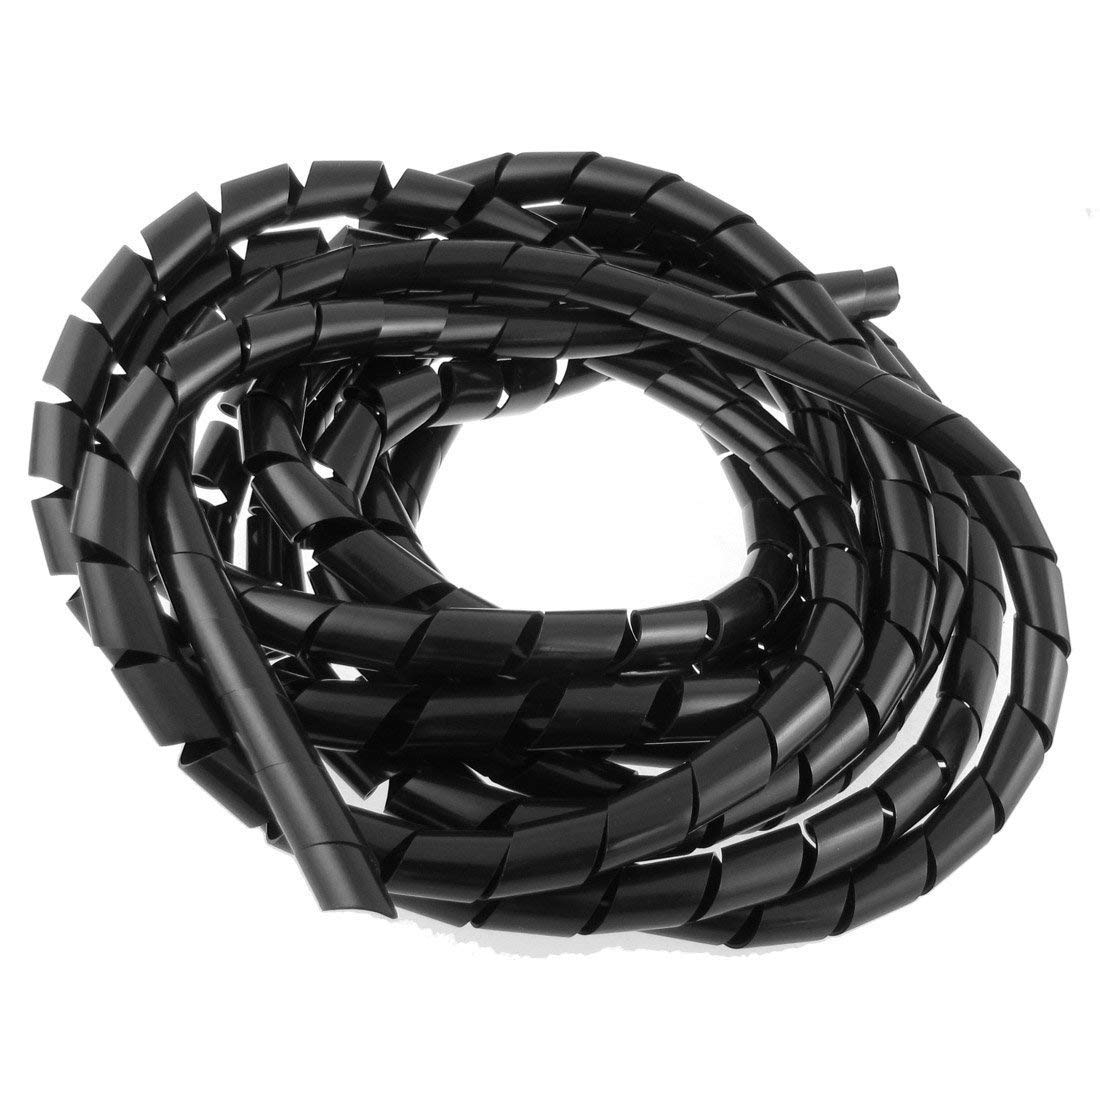 Spiral Wire Wrap Tube - SODIAL(R) 14mm Outside Dia 17 Ft Polyethylene Spiral Wire Wrap Cable